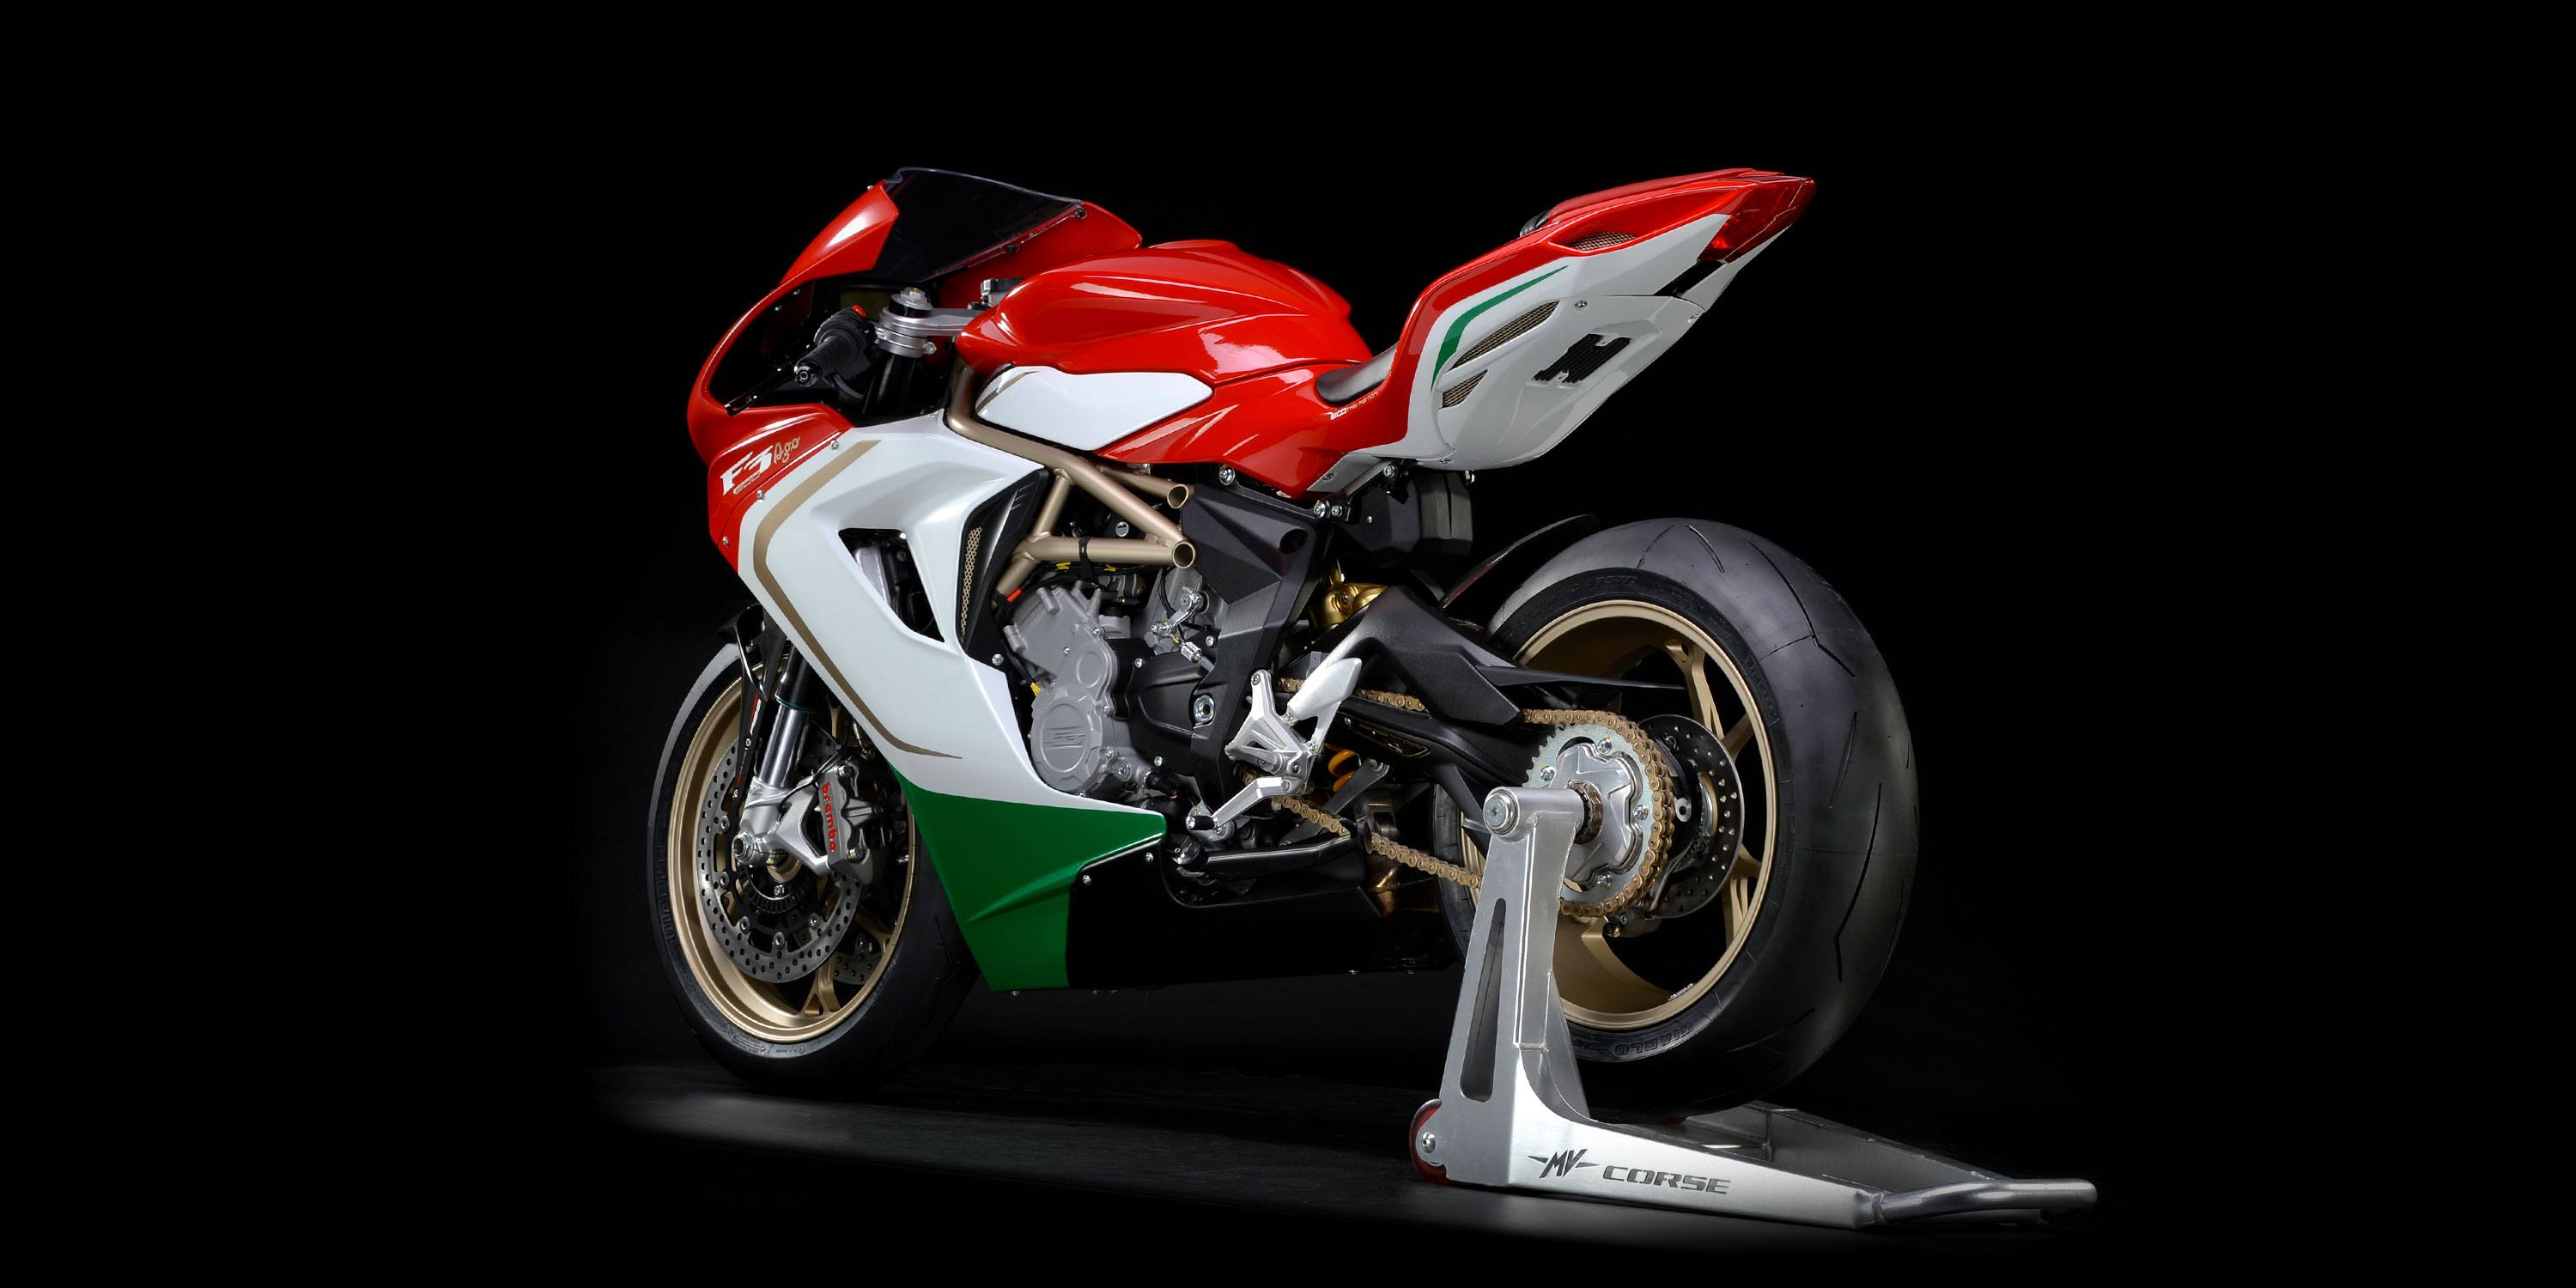 New 2016 mv agusta f3 800 ago motorcycles in greenwood village co